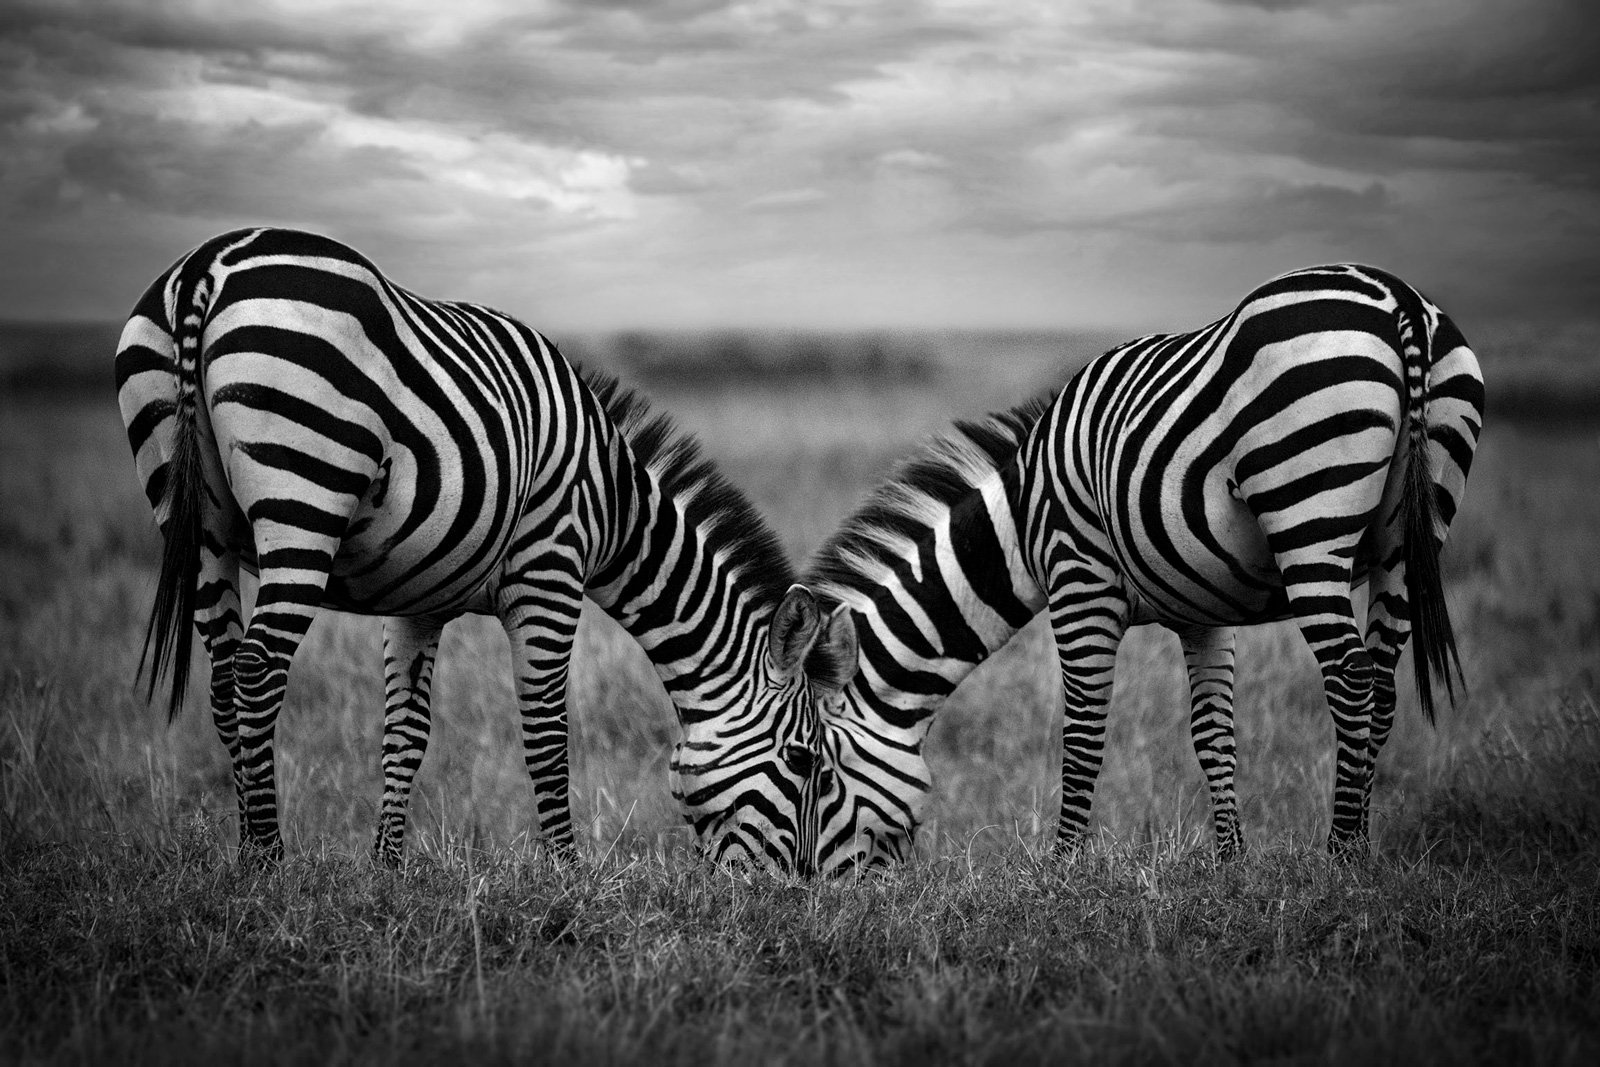 Two zebras in an intimate embrace - Maasai Mara National Reserve, Kenya ©Bjorn Persson